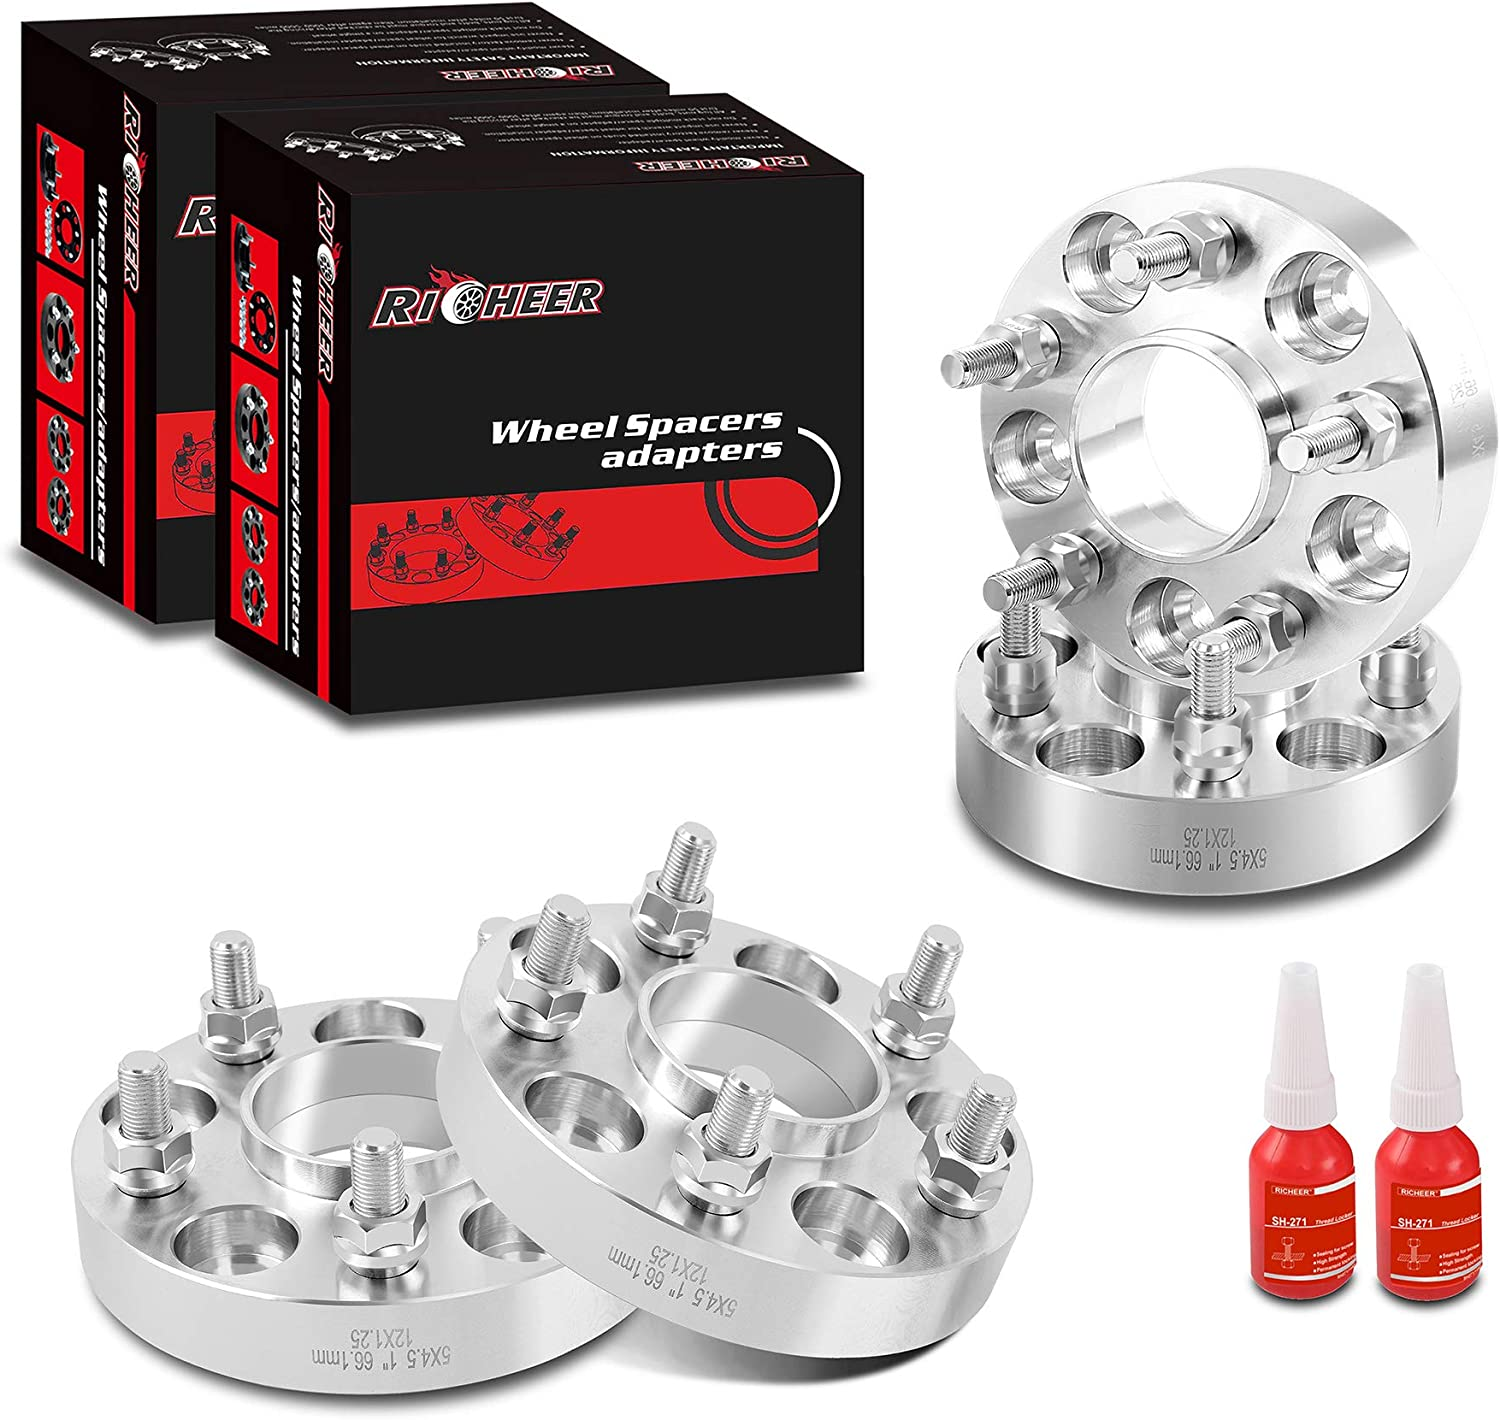 for 350Z 370Z 300Zx 240Sx G35 G37,Forged spacers 1 inch 12x1.25 Studs/&66.1mm Center Bore. 5X114.3mm Richeer Wheel Spacers 5x4.5